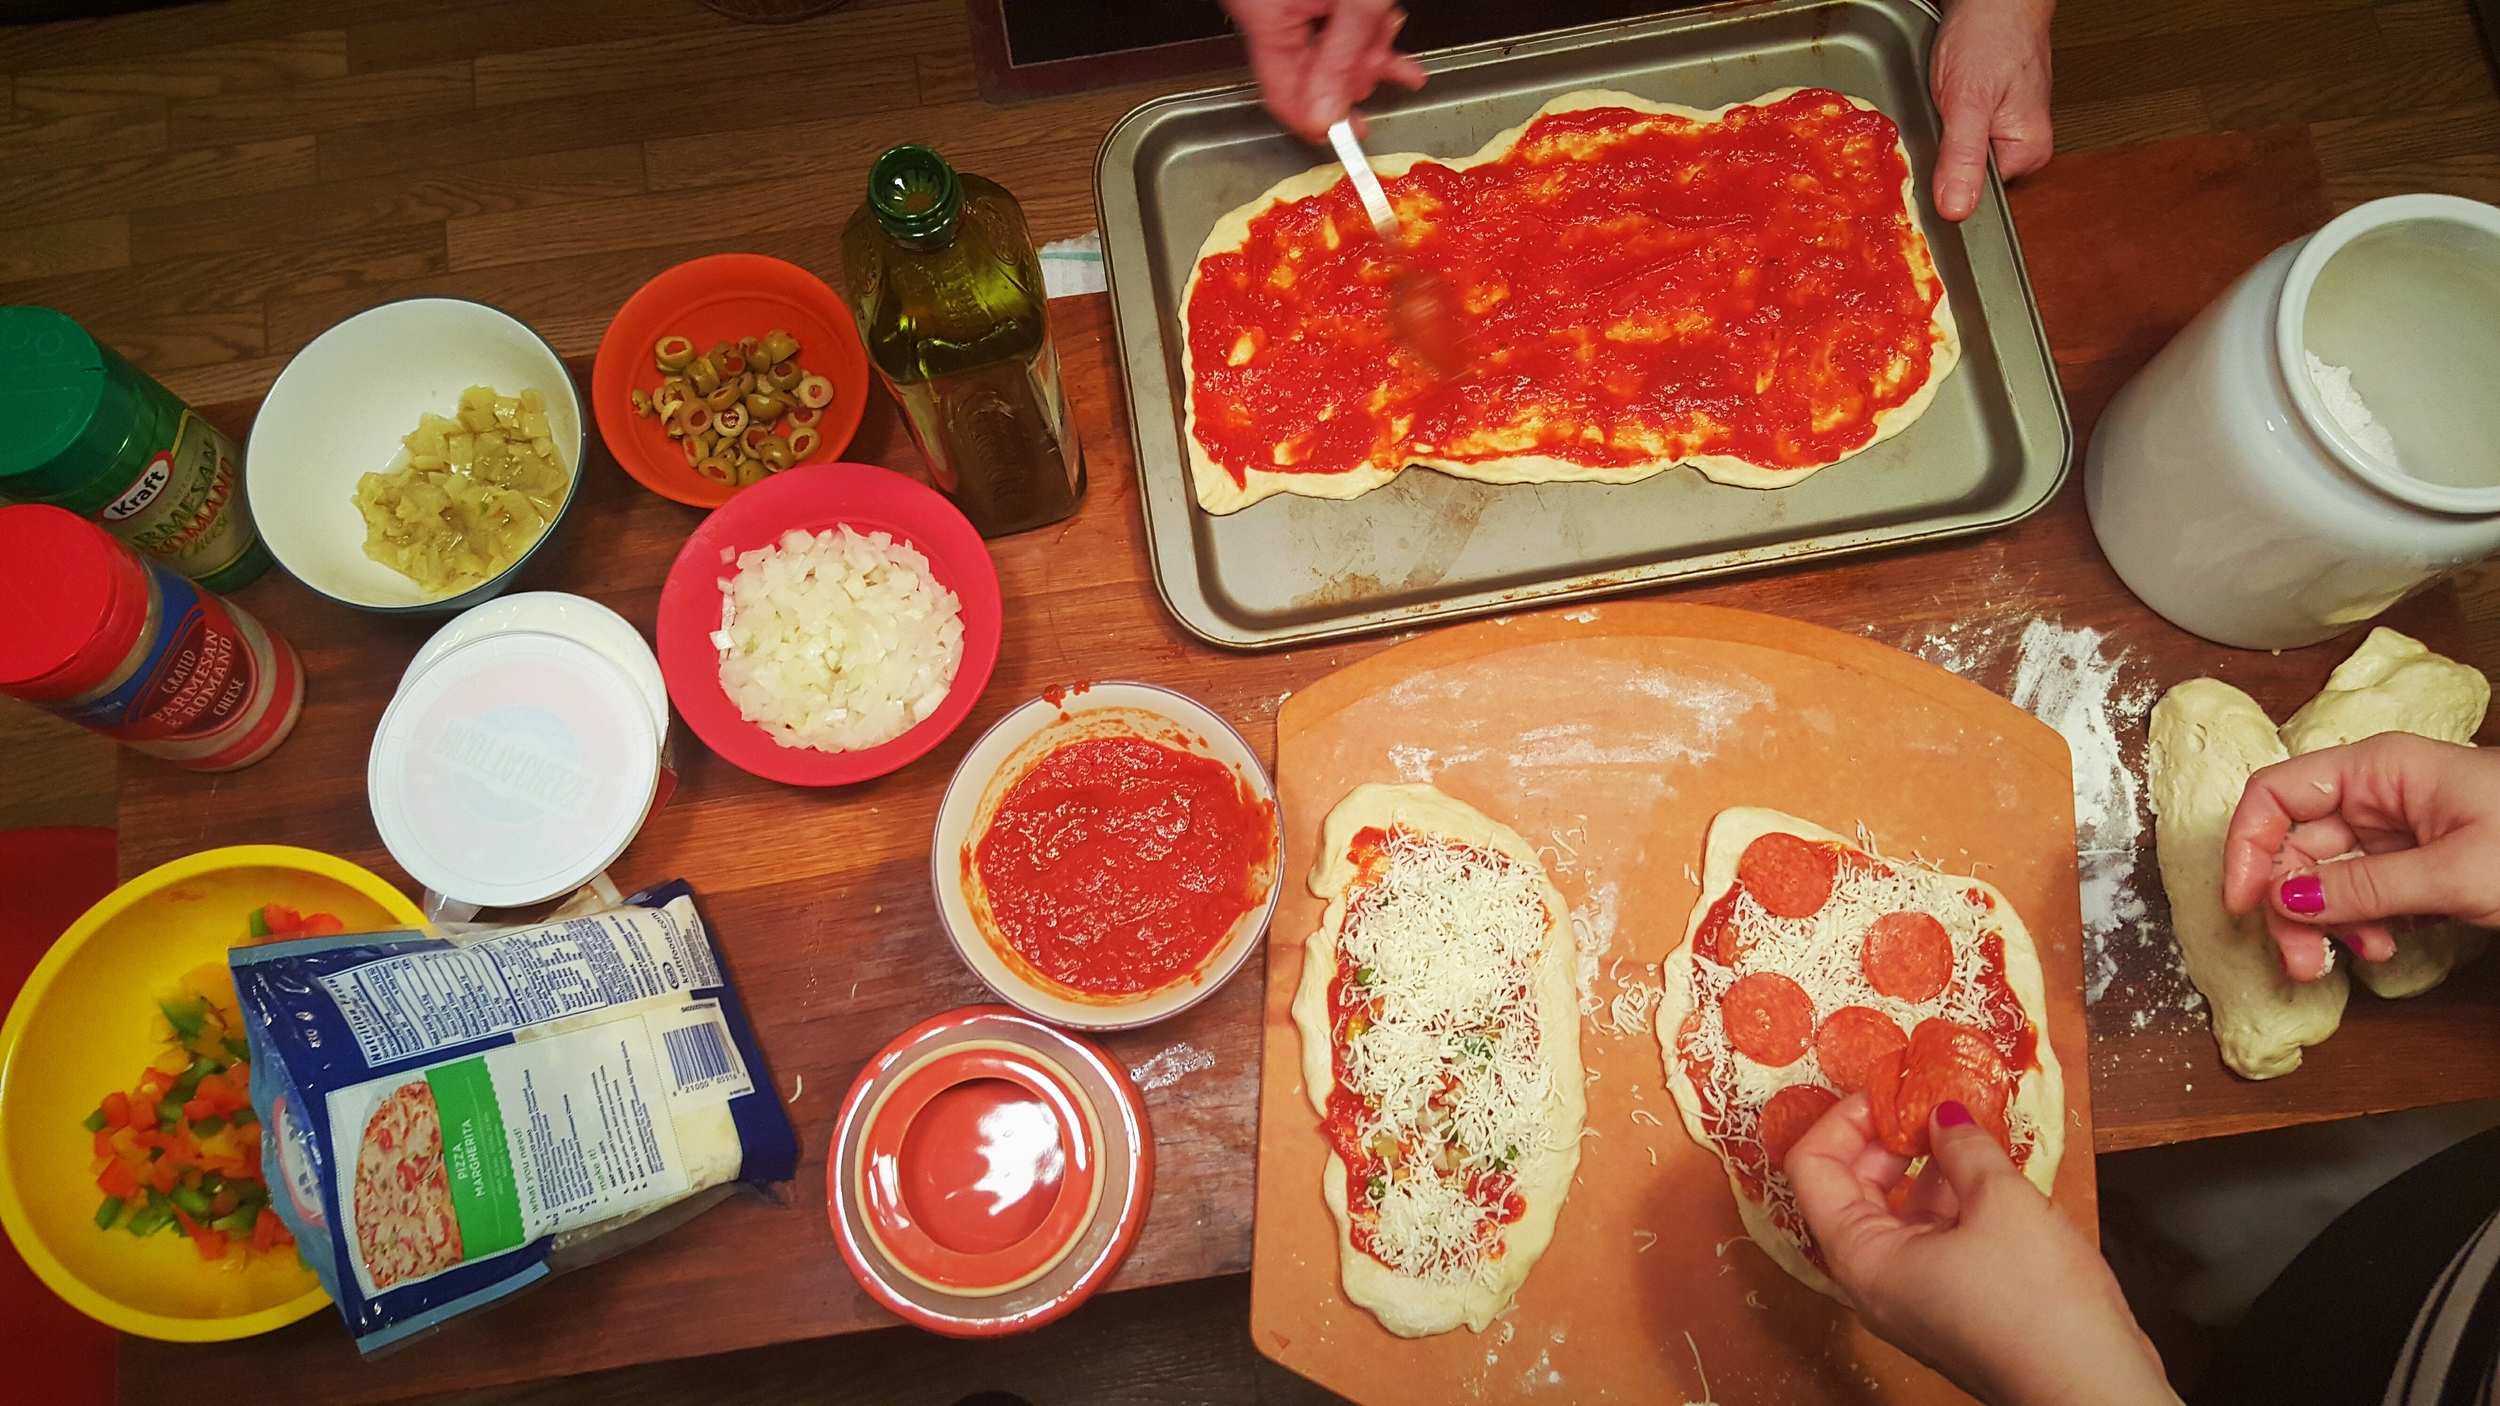 Pizza night- making pizza